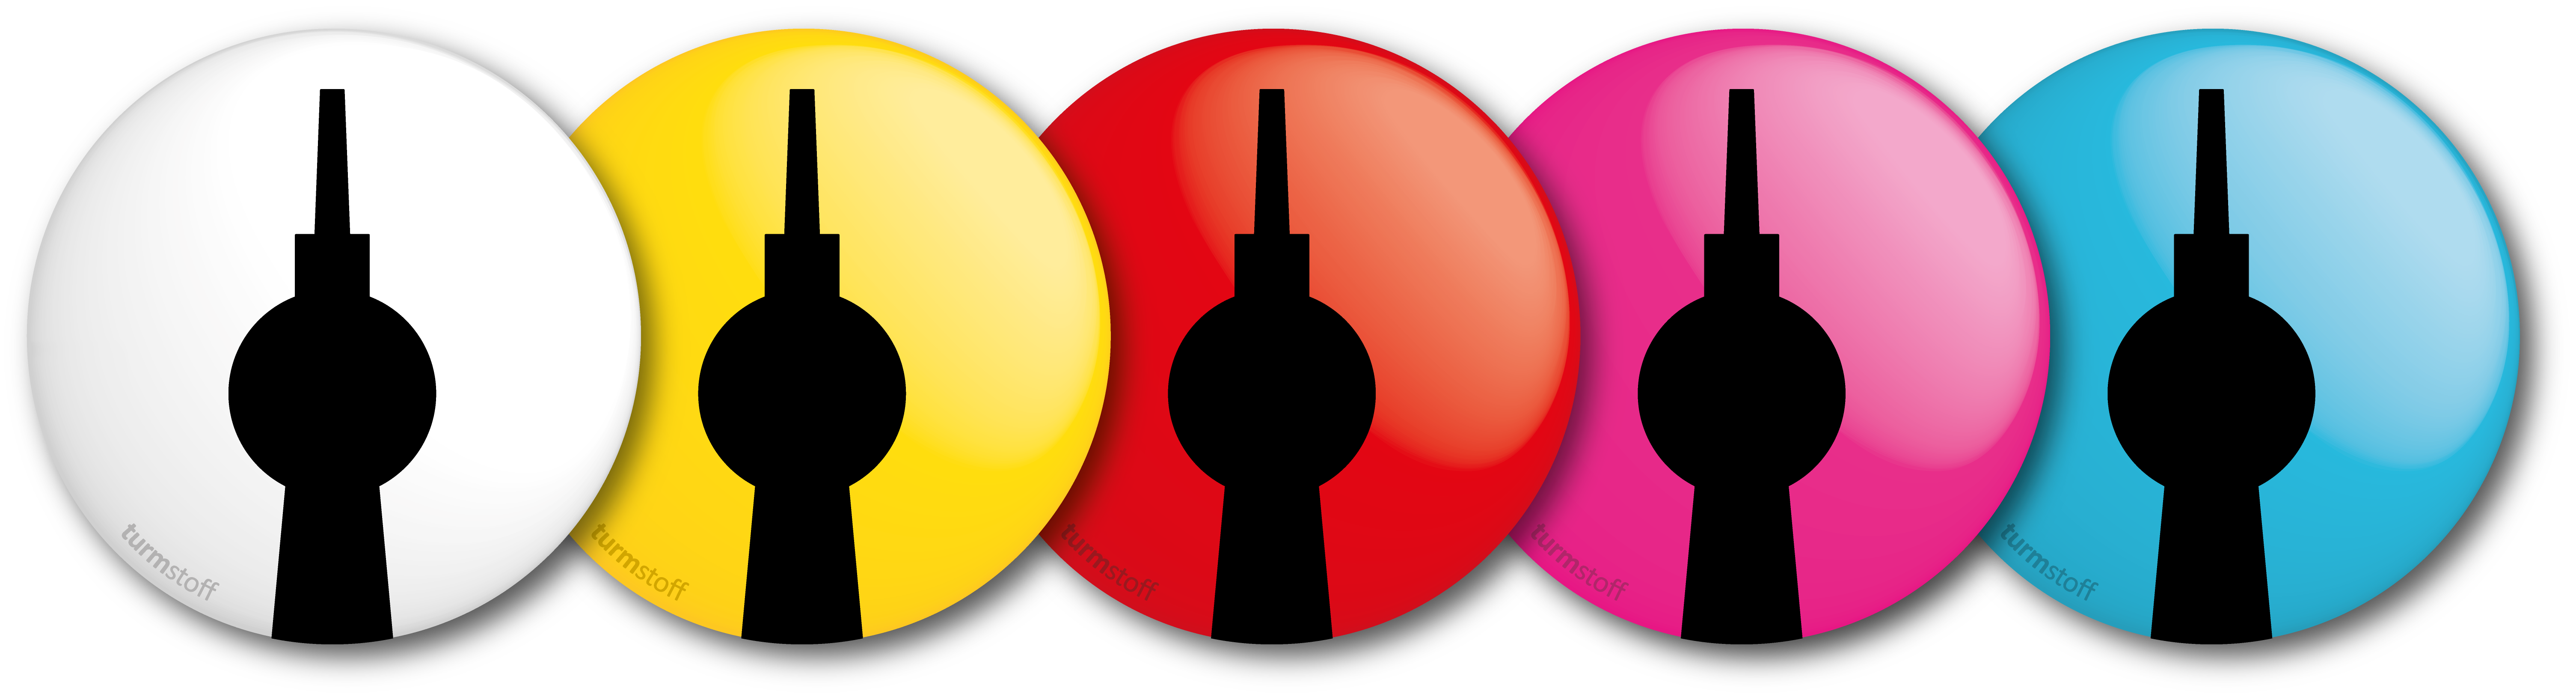 fernsehturm-berlin-alex-button-anstecker-sortiment